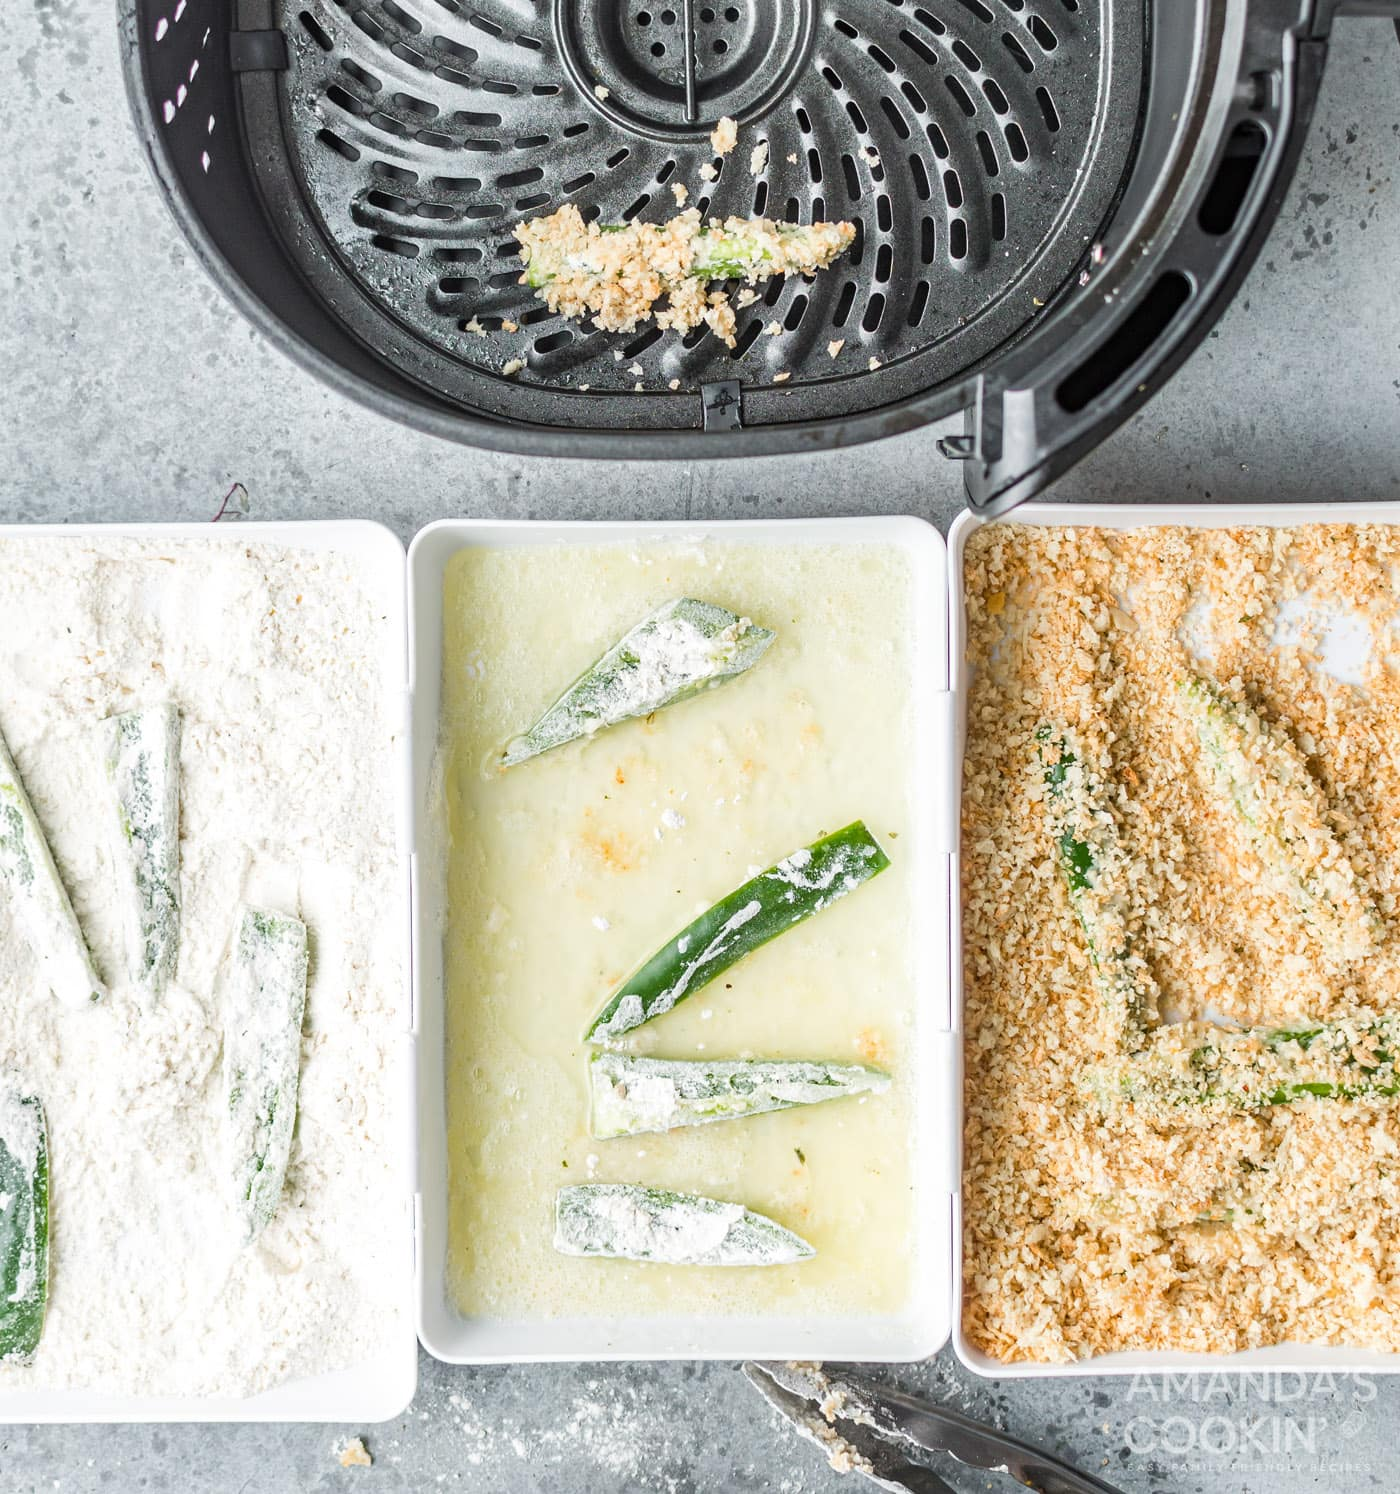 jalapeno slices in dredging stations of buttermilk, panko, and flour